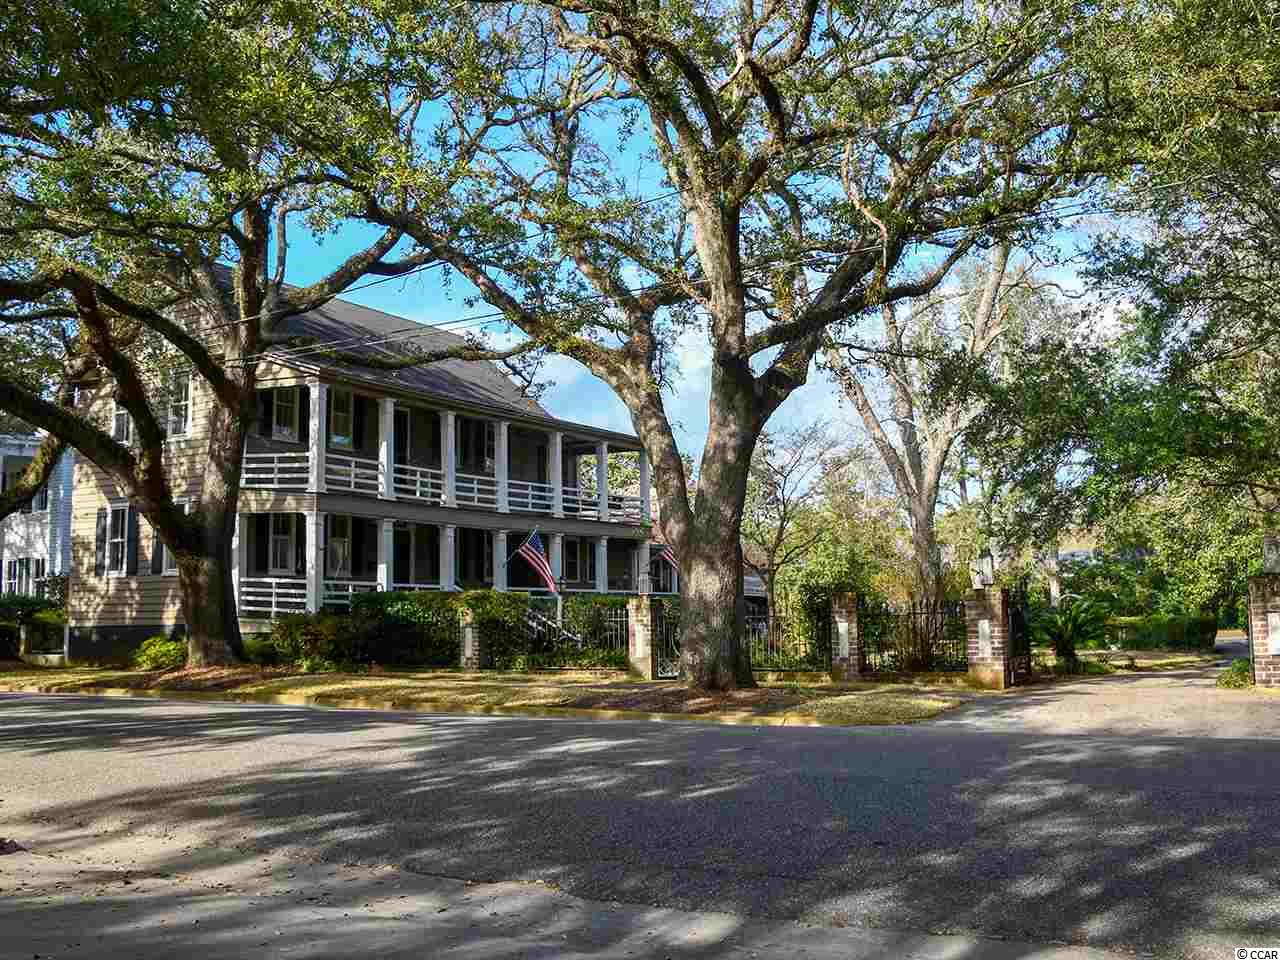 A unique opportunity to own a historic Georgetown property...  This charming lovingly restored three-story home was built between in 1740 and 1750 and retains many of unique architectural features. Referred to locally as the Sampson-Hamby-Ward House, it is constructed of black cypress siding and retains original doors. In addition to a living room, dining room and den, the 3 bedroom, 2 bonus room, and 3 bath residence features both hardwood and heart of pine flooring. Mantles and molding details are noteworthy. Three fireplaces are fitted with gas logs. The design of the balusters of the stairway is identical with that of the Chancellor de Saussure House, (18 Montague Street, in Charleston) which is known to have been built before the Revolution. The double-tiered piazzas of this Georgian style dwelling overlook a well-manicured garden of native plants.  The property also features what is presumed to be the original kitchen building containing a central chimney stack with double-braced cooking fireplaces. This is a grand example of early service architecture. Local artisans were engaged to create the hand-crafted fence and entry and driveway gates. Pieces of marble found in the original kitchen enhance the columns which bear gas lanterns.  Architectural details and descriptions from the Historic American Building Survey completed in 1963 can be given upon request. This is a large city property which must be seen to be fully appreciated.